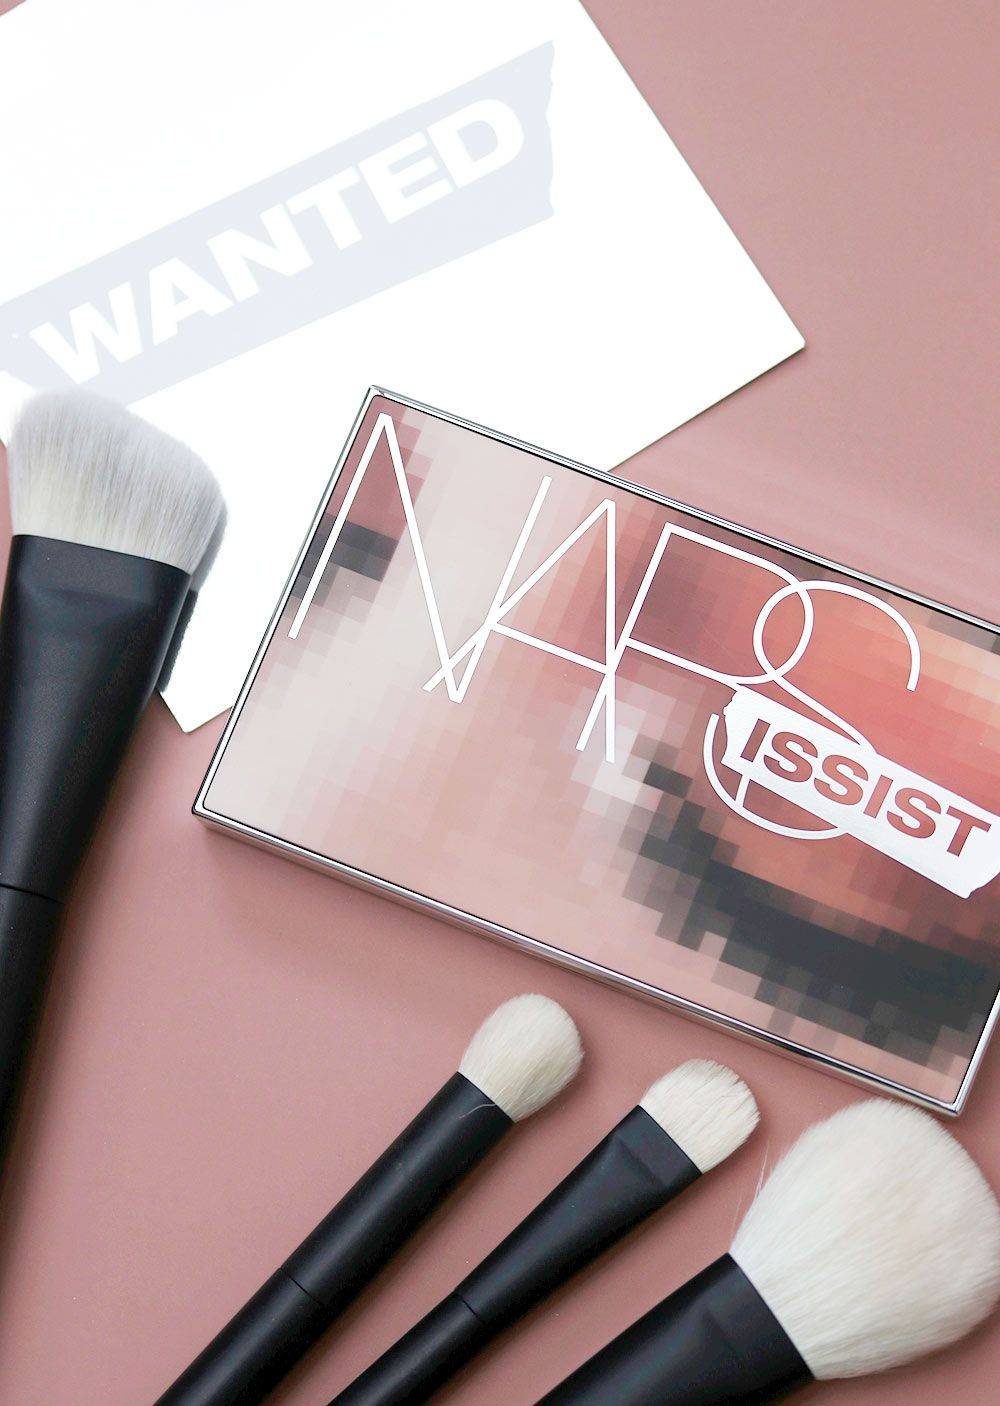 Cyber Montag Nars Wanted Lidschatten Palette Ein Cyber Montag Special Avant